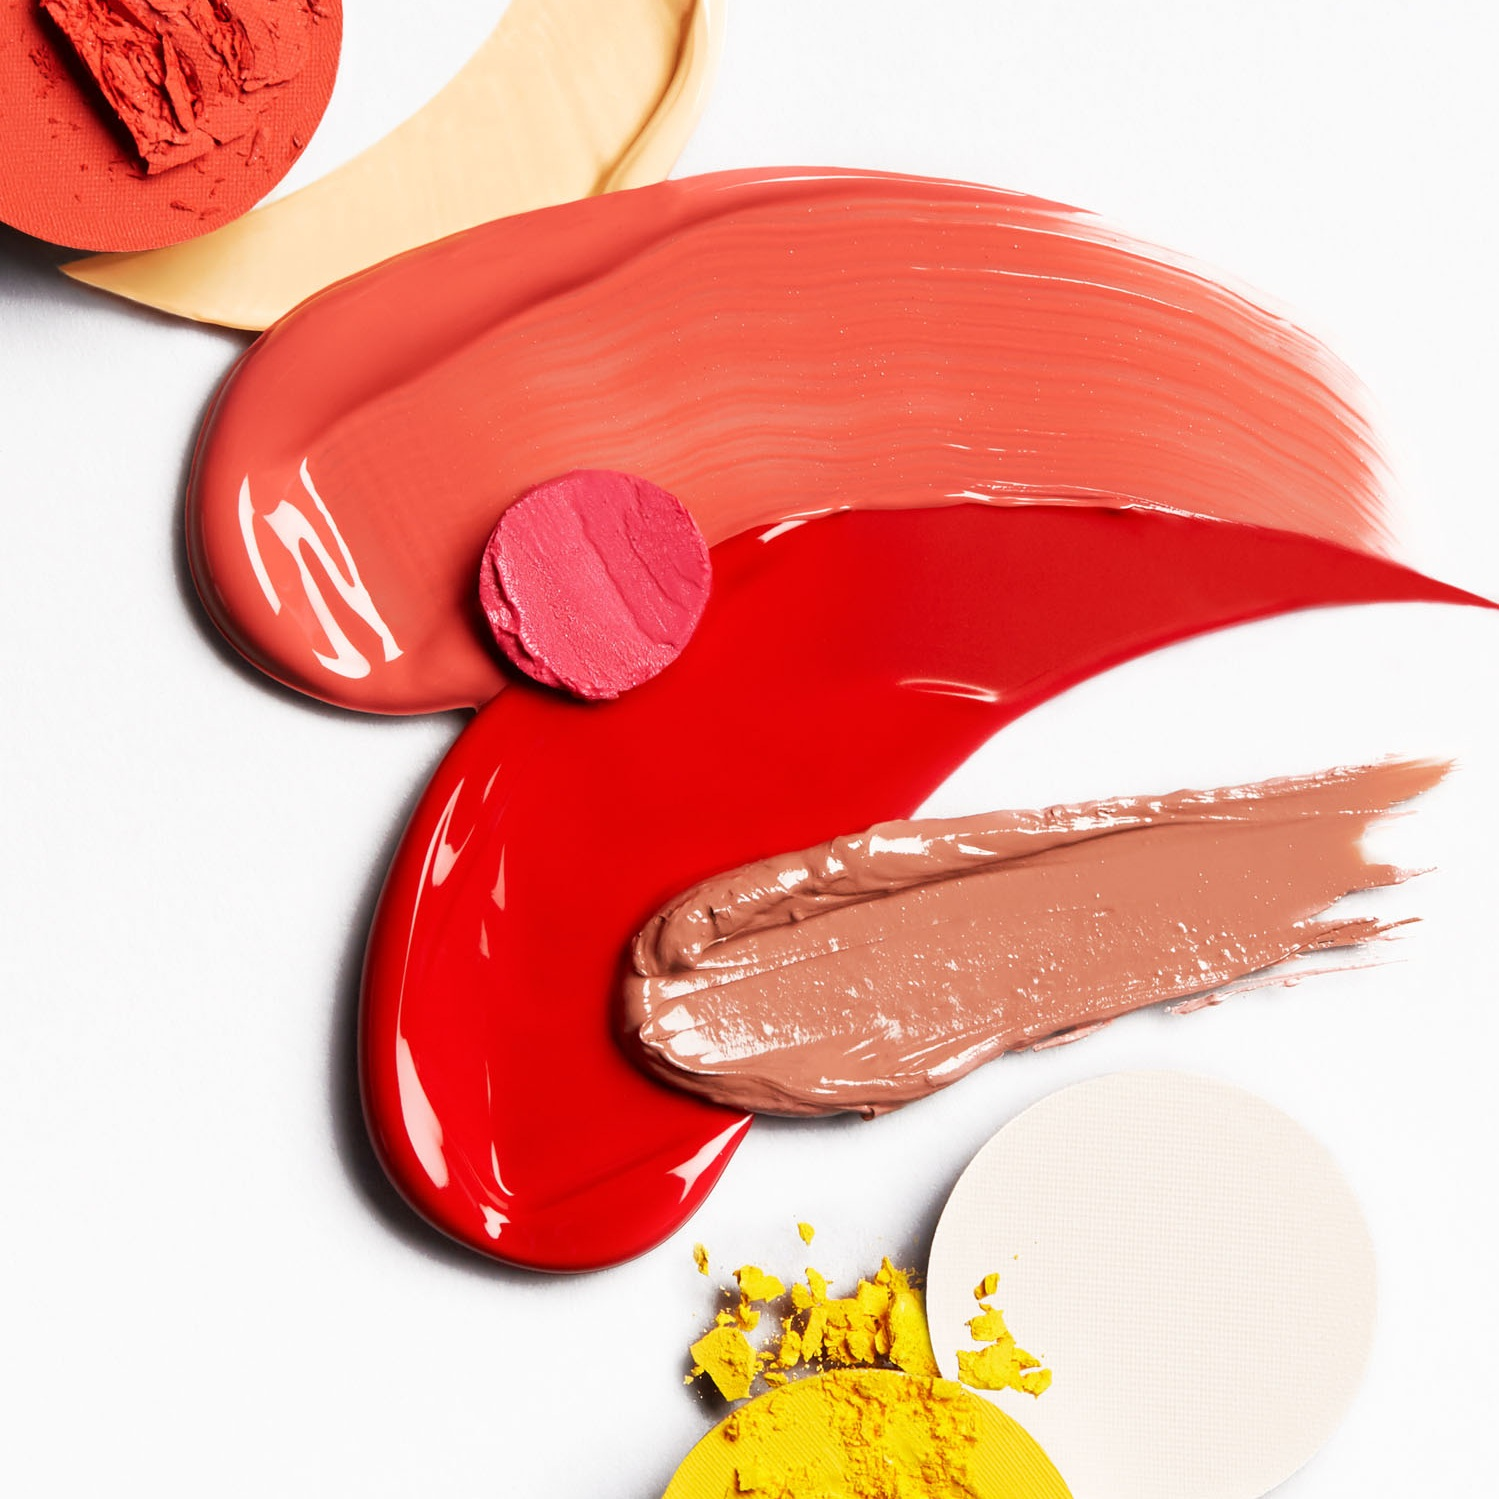 COSMETICS & PRODUCT STYLING